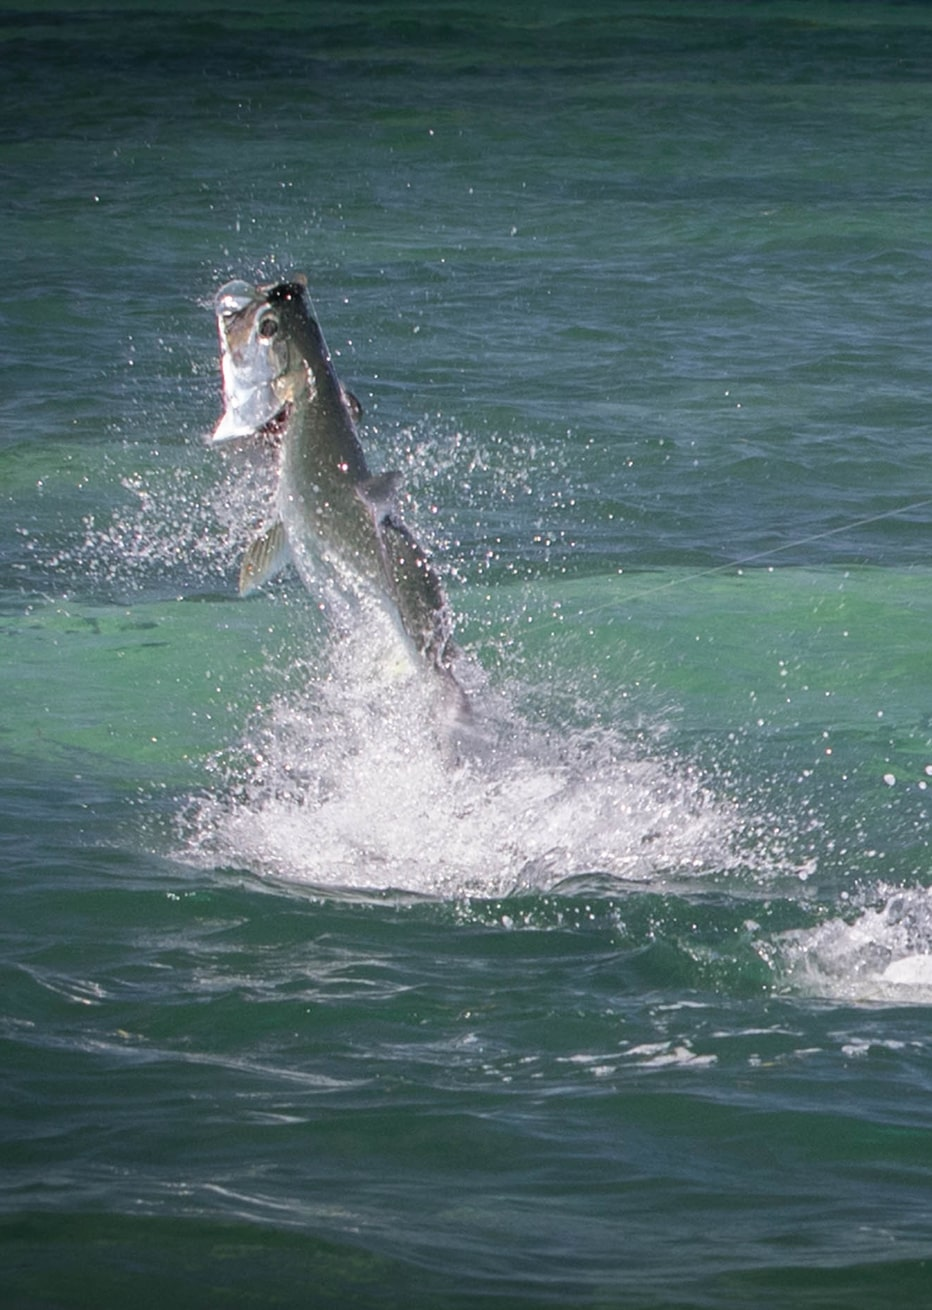 keys tarpon jumping out of water